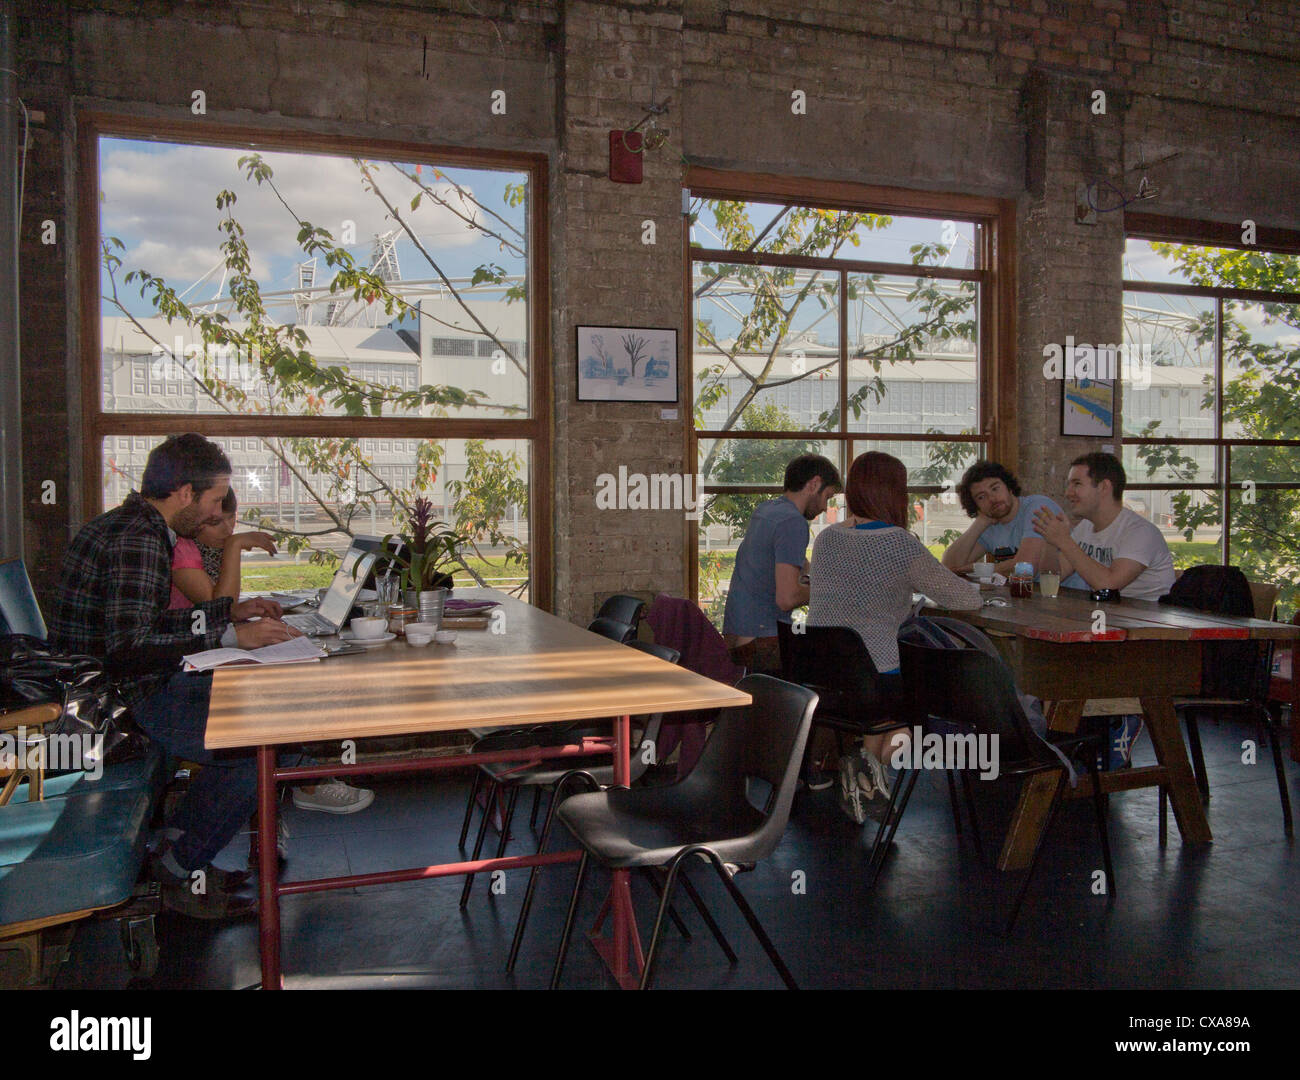 People enjoy drinks at cafe by new towpath on Regent's canal built as part of the legacy of the London 2012 - Stock Image